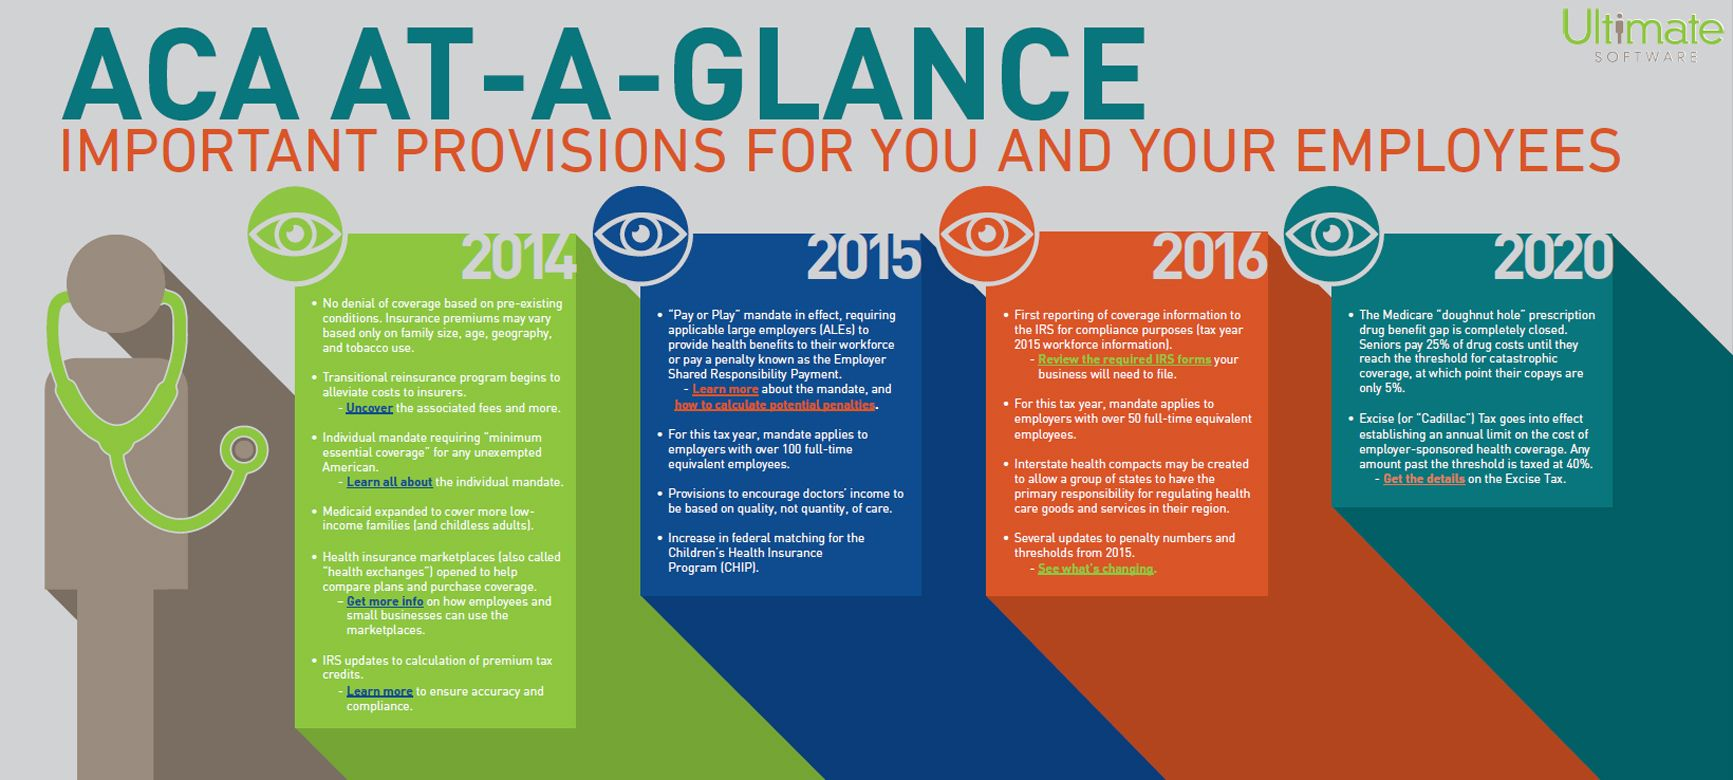 2016 Aca At A Glace Infographic Jpg 1733 780 Infographic Info